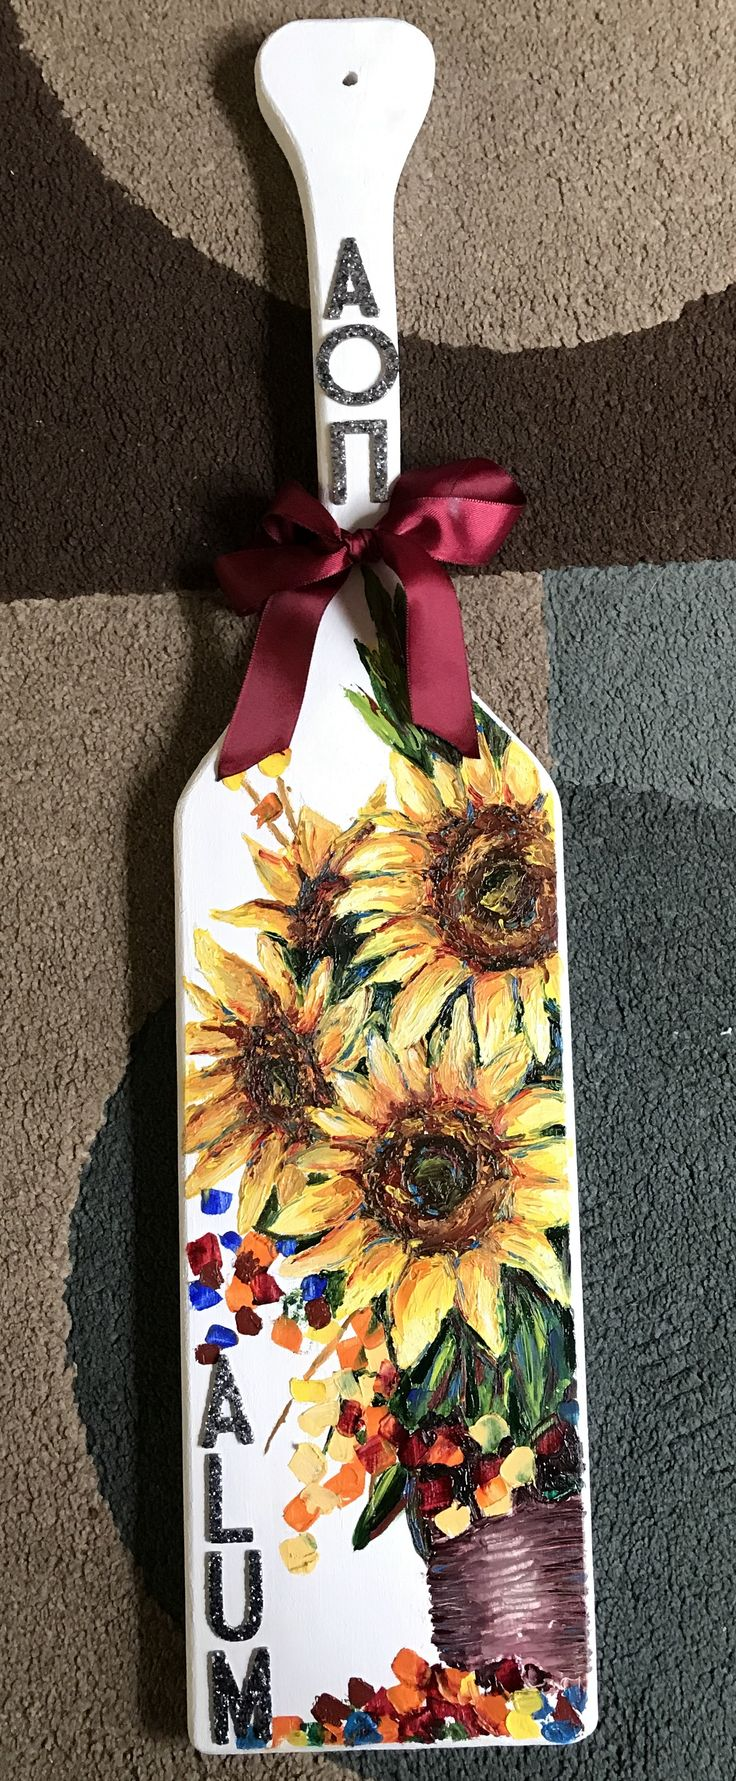 AOII Alum Paddle, Alpha Omicron Pi, sunflower paddle, sorority, AOΠ #aoii #aoπ #AOΠ #AOII #sororitypaddle #alum #sunflowers #flowerpaddle